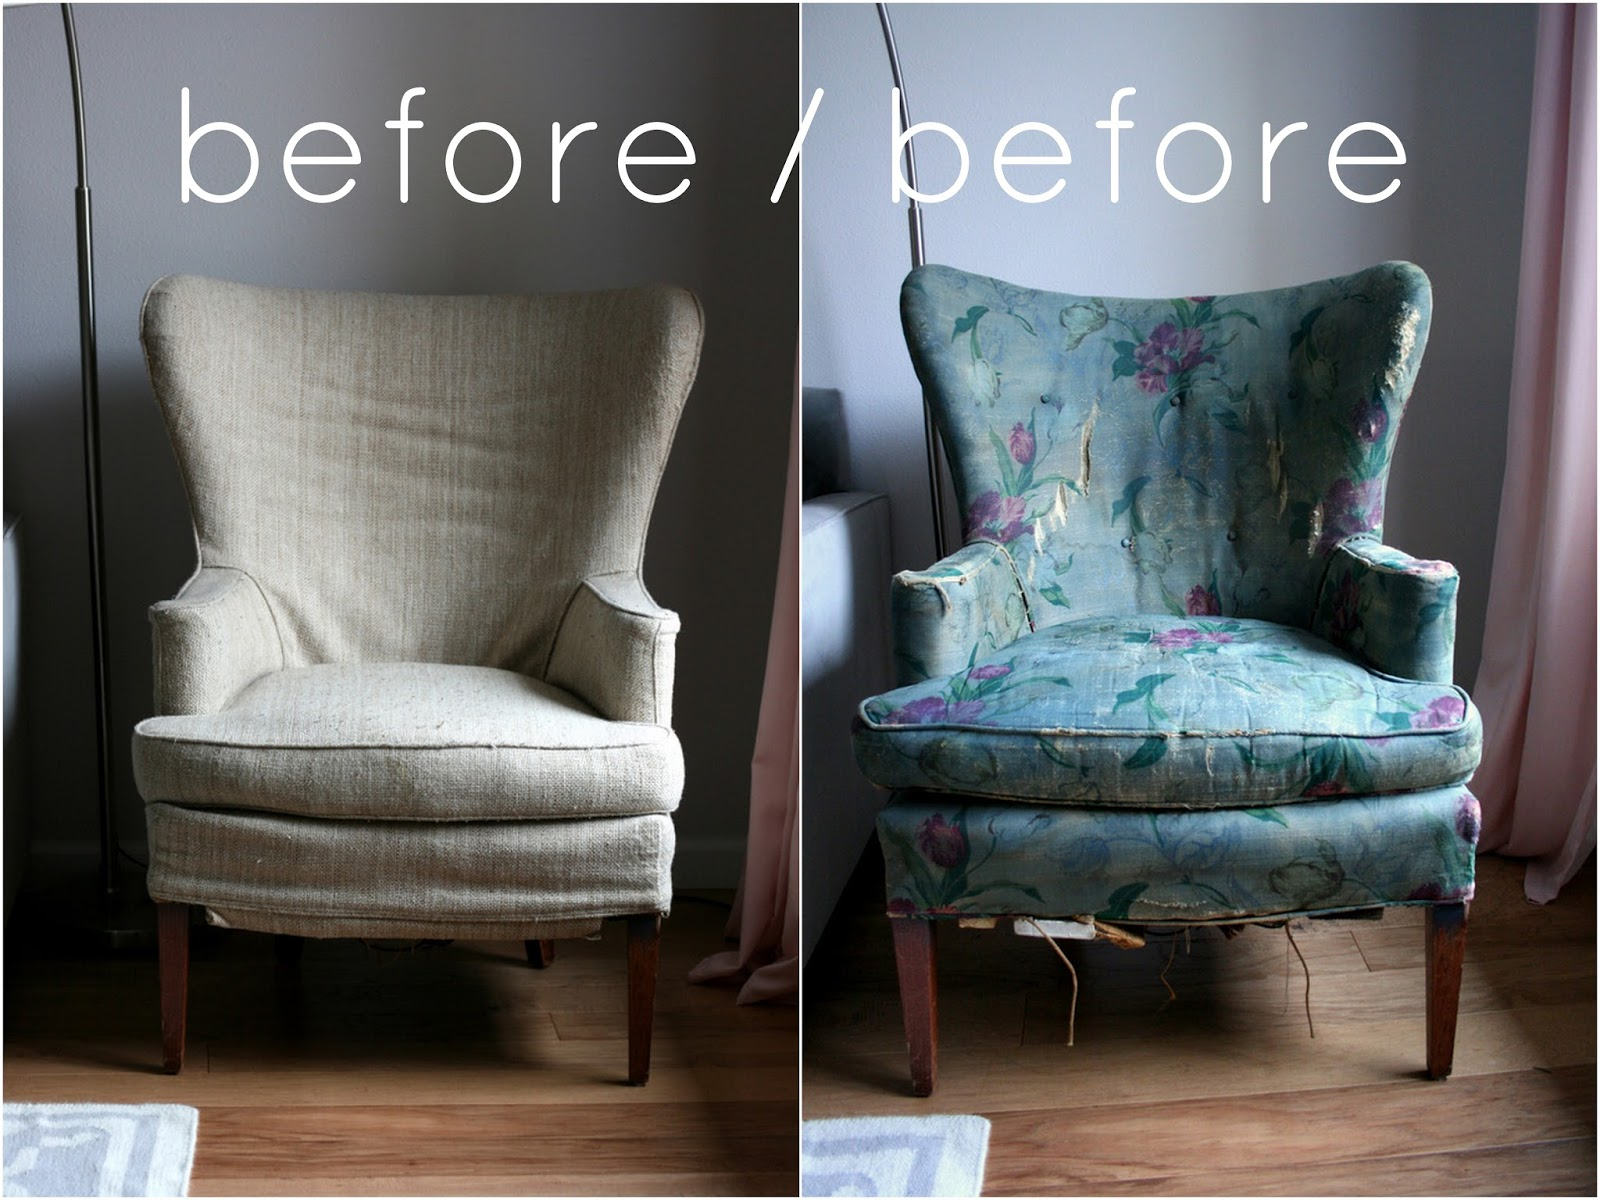 How To Make Slipcover For Wingback Chair Small Rocking Cushions Phew Vintage Finally Complete